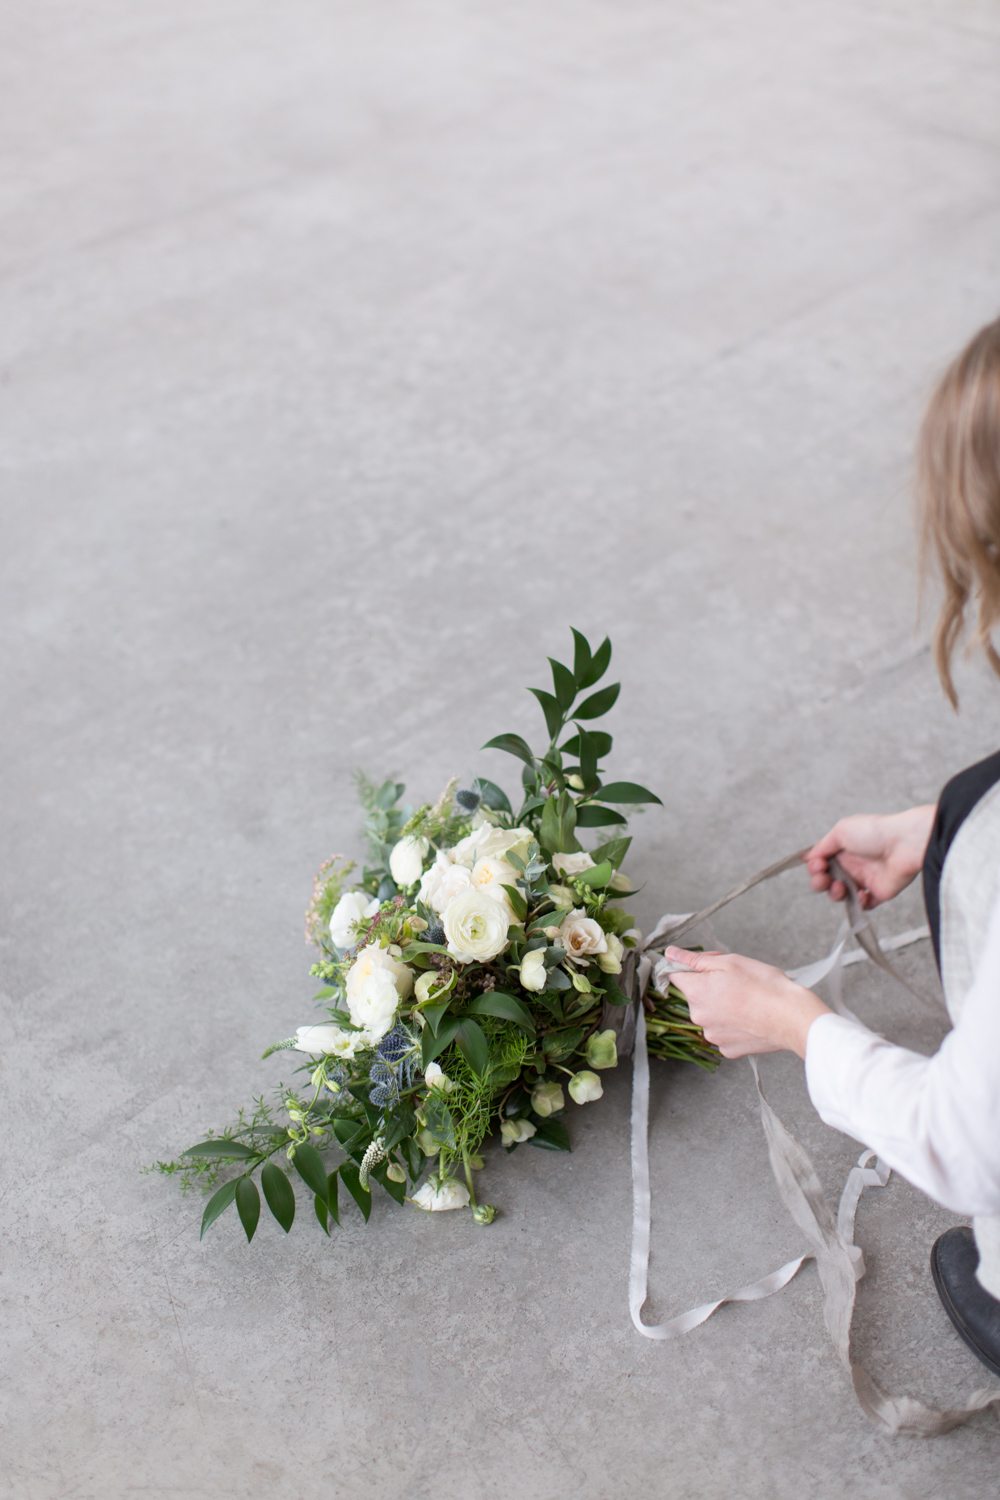 Florist tying an organic bouquet